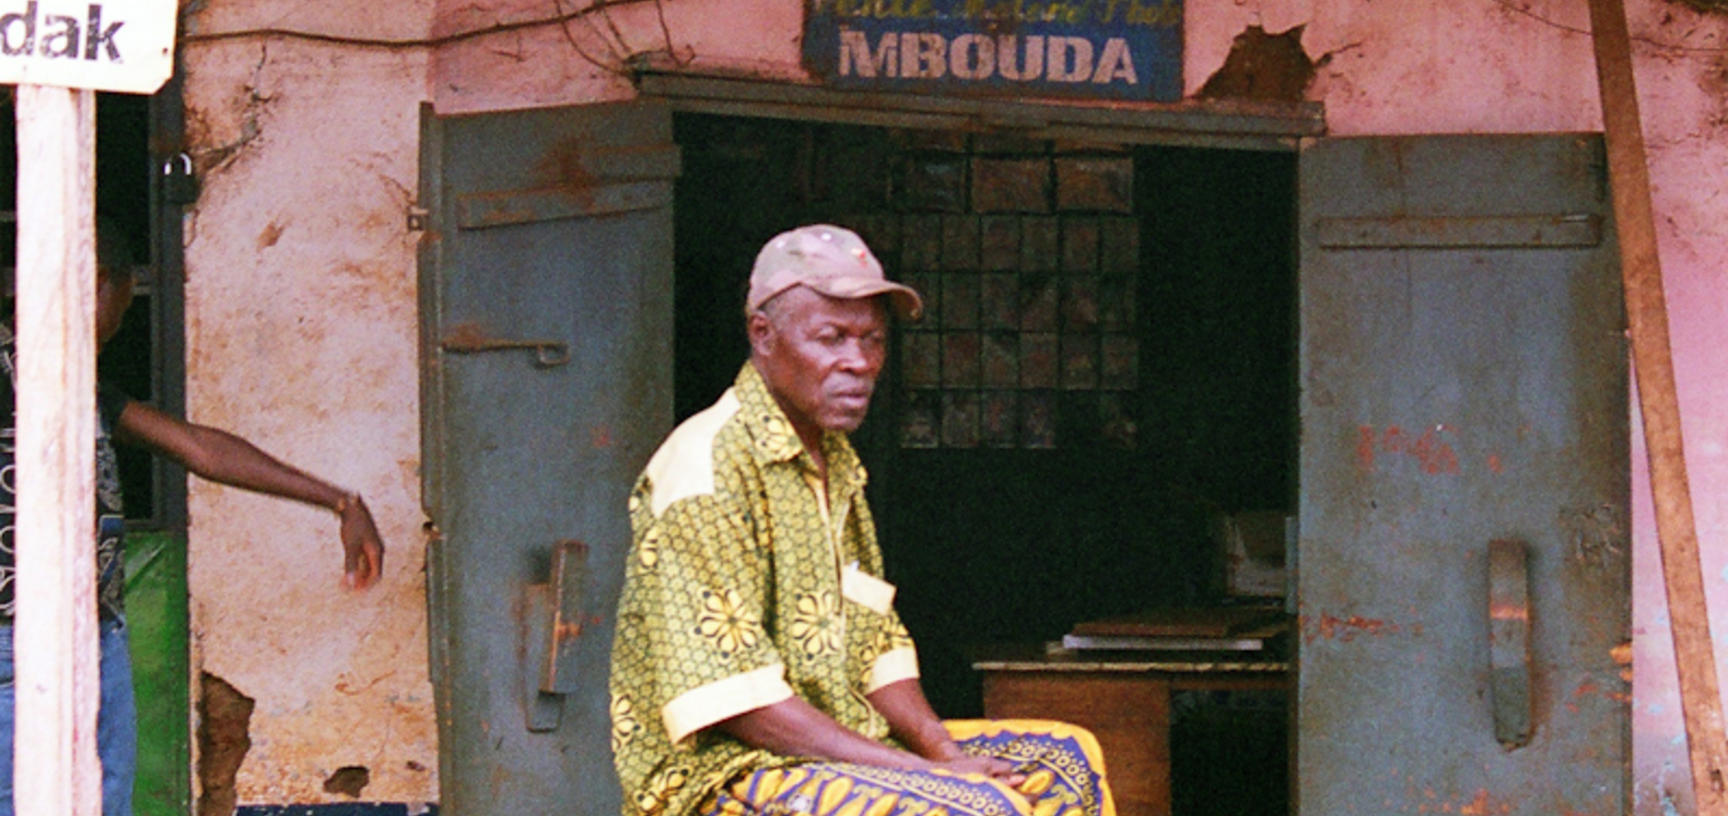 The photographer outside his studio in Mbouda, Cameroon. March 2007.